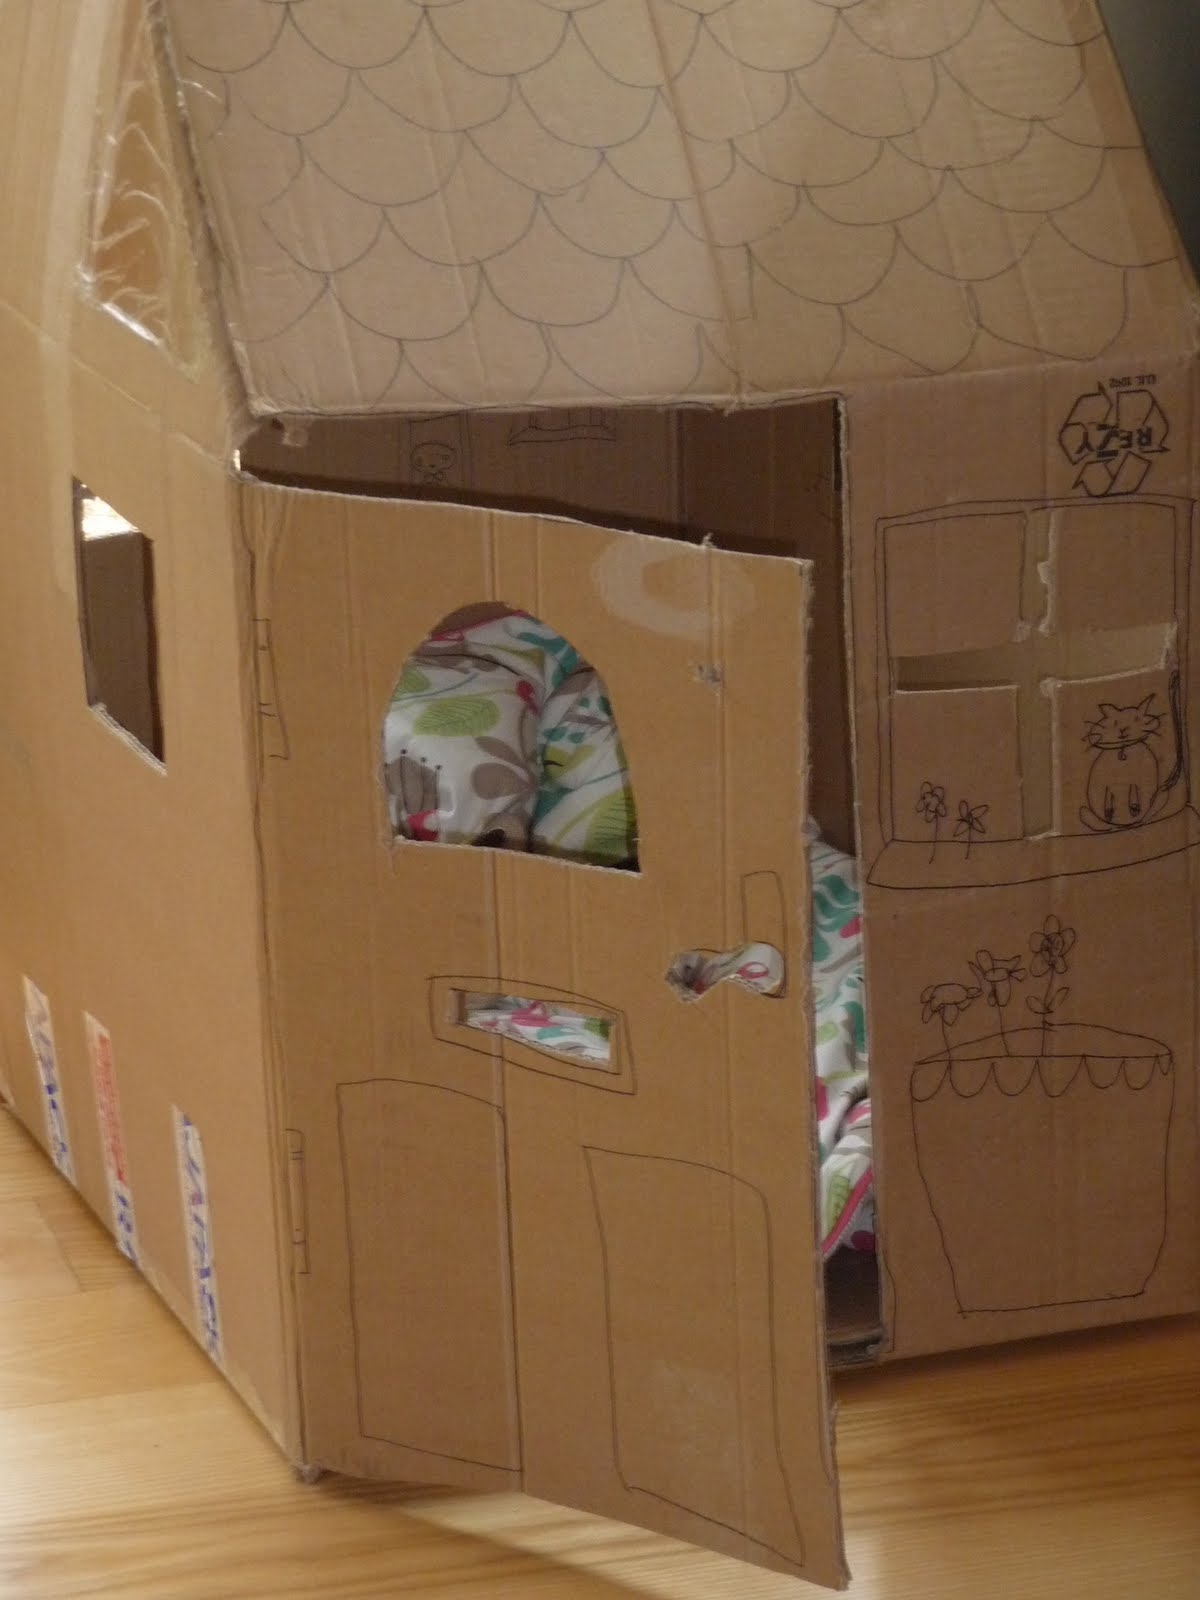 cloud cuckOO designs: the fun of a cardboard box on college house designs, simple box house designs, cardboard sculpture designs, cardboard village houses, shoe box house designs, cardboard houses and shelters, cardboard structure designs, prison cell house designs, cardboard house ideas, cardboard house template, cardboard buildings, cardboard house patterns, boxcar house designs, tube house designs, mcpe house designs, cardboard house plans, playing card house designs, cardboard barn playhouse, paint house designs, cardboard shelter designs for storage,